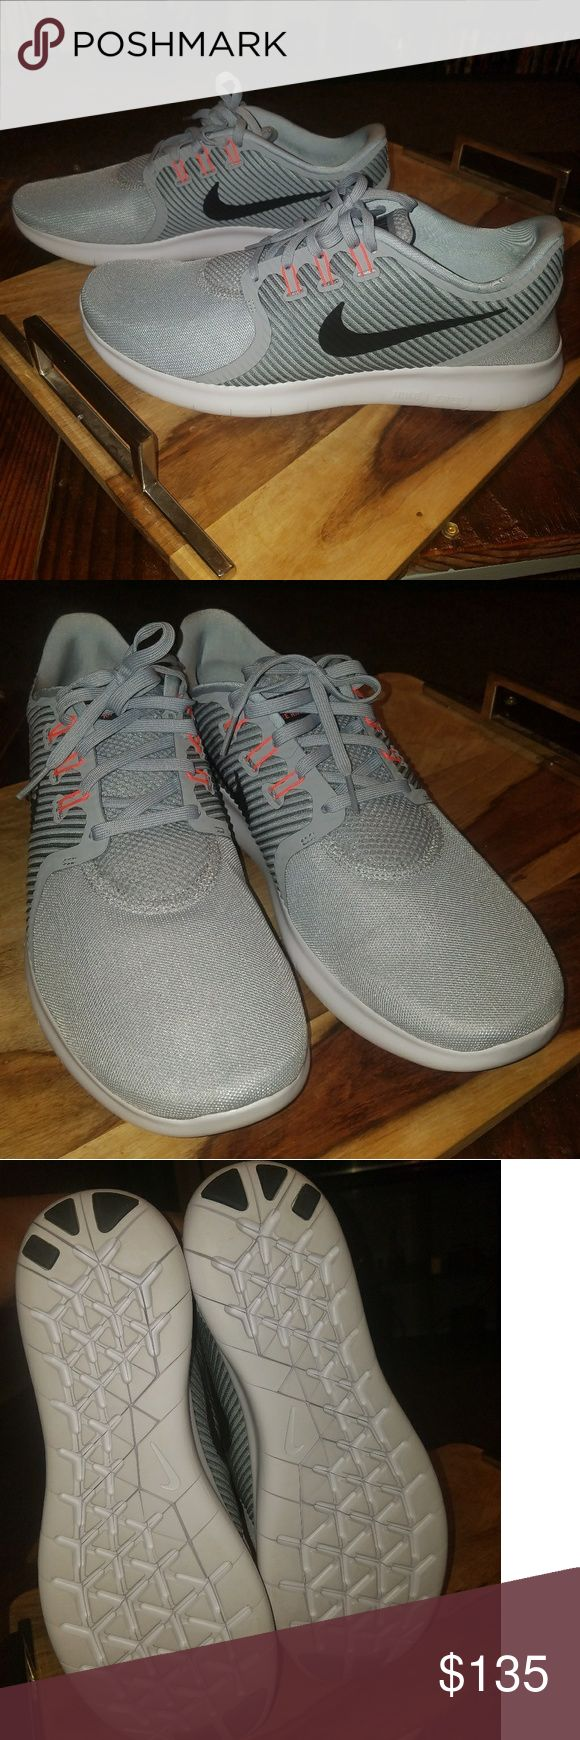 New Nike Running Shoes Brand New Nike Running Shoes Nike Shoes Athletic Shoes